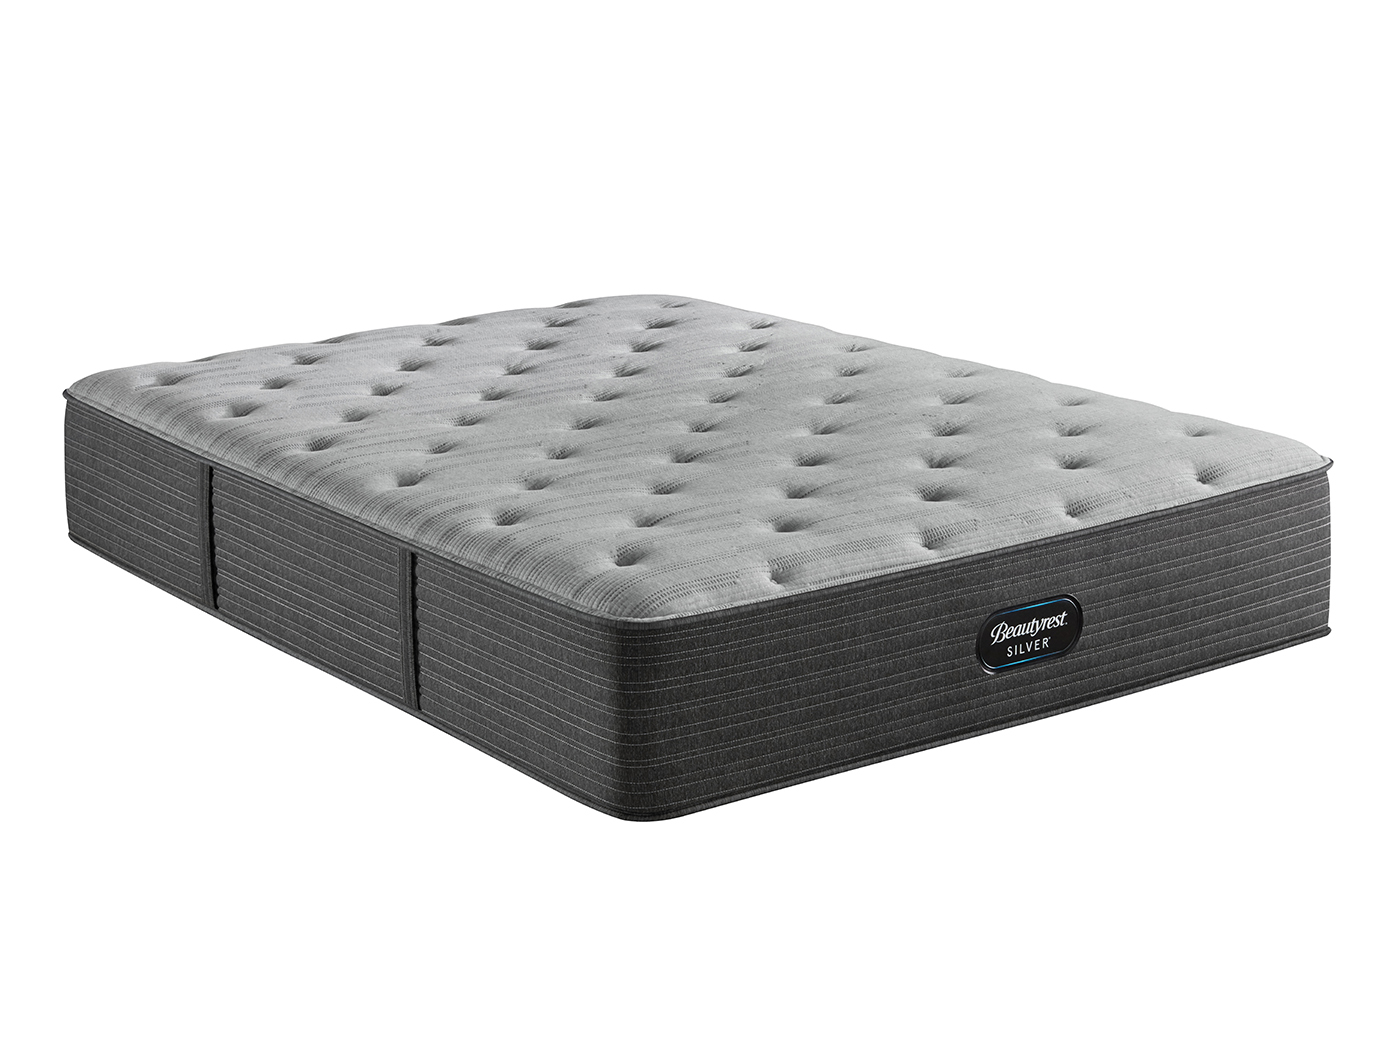 Beautyrest Silver BRS900C-RS Plush Twin XL Mattress